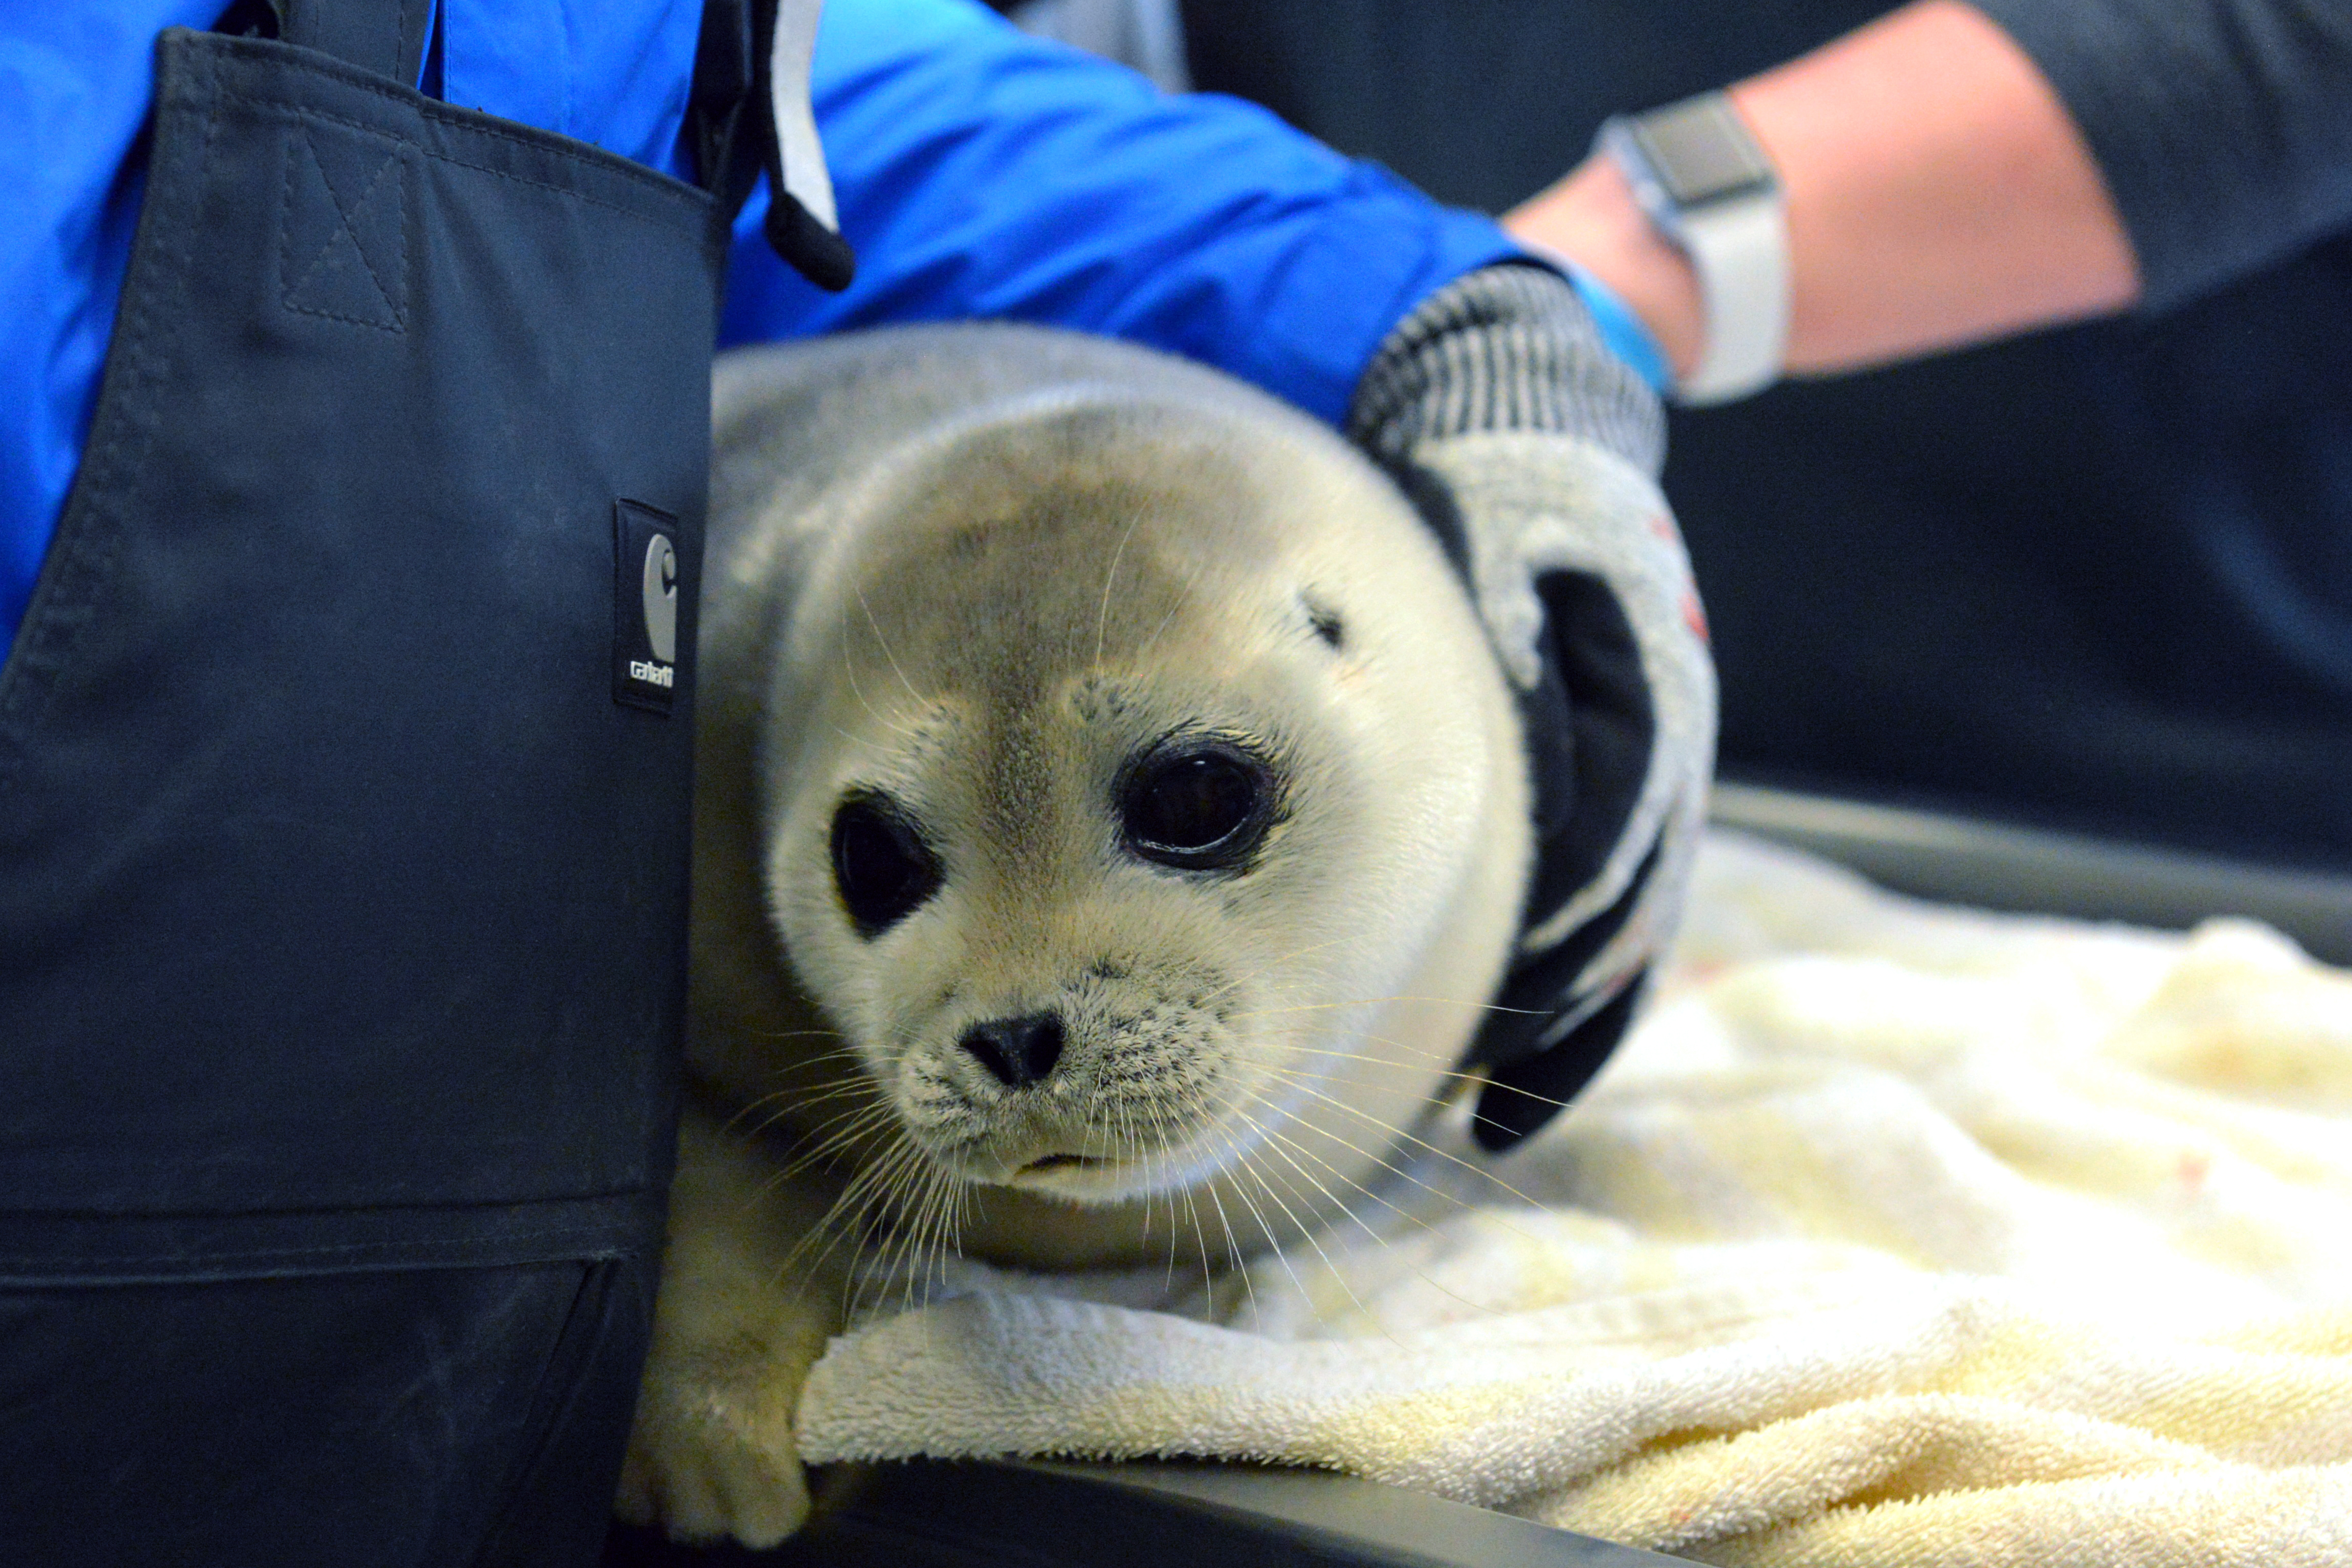 A new critical habitat designation is on the way for ringed seals, after US courts uphold threatened listing